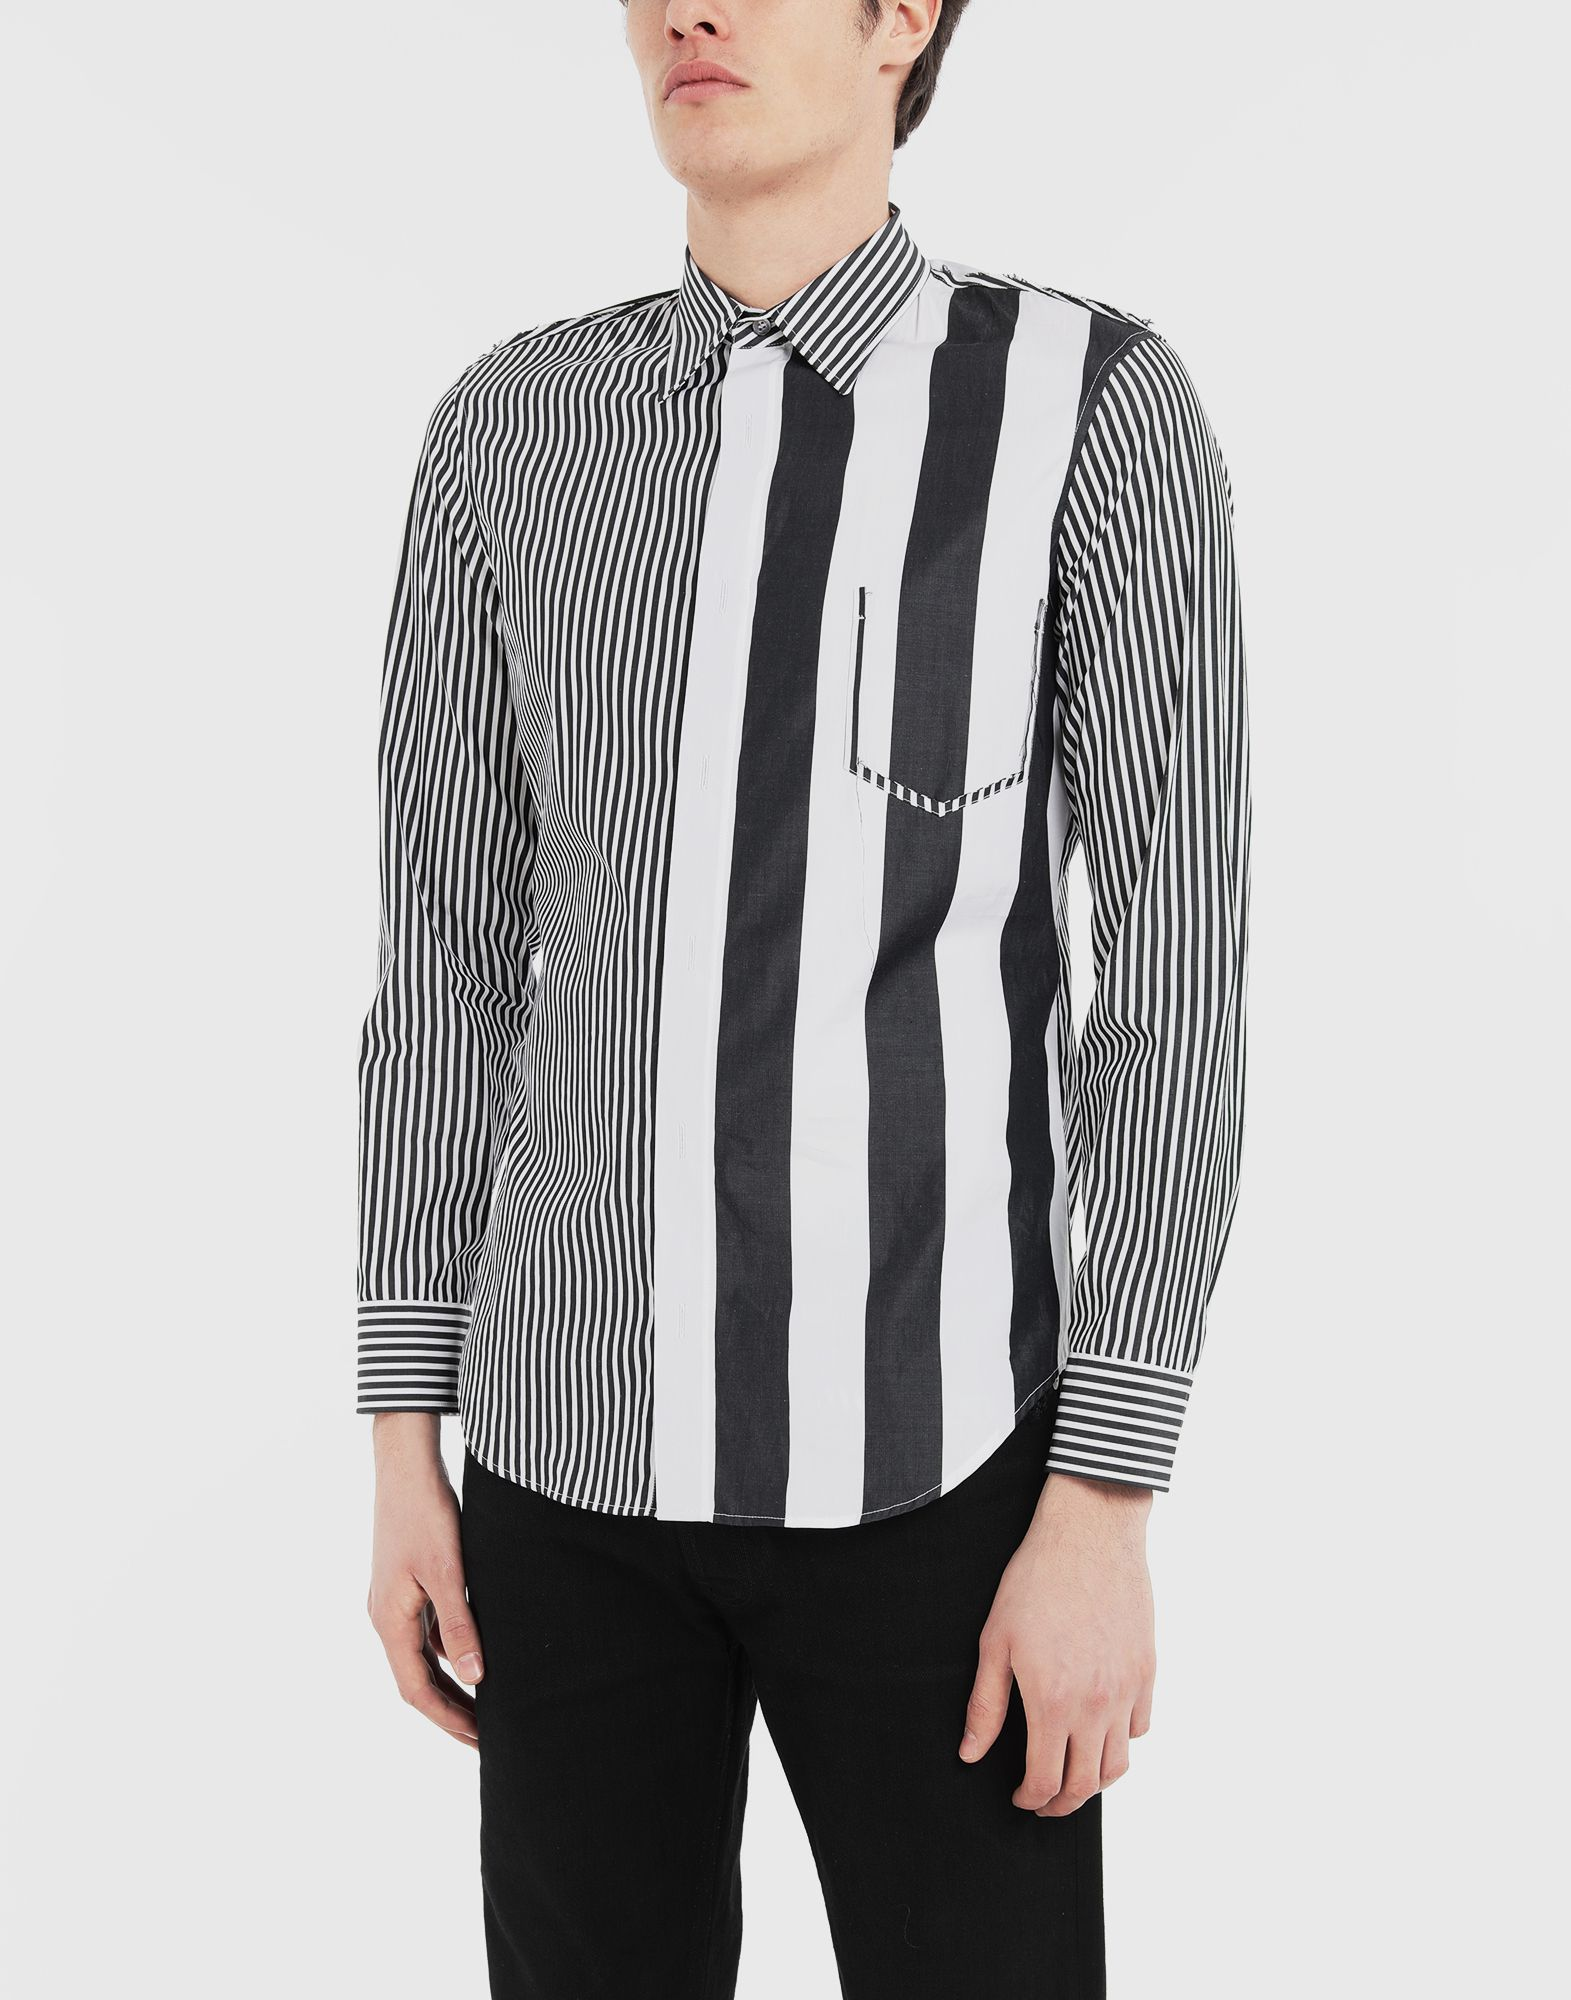 MAISON MARGIELA Décortiqué striped shirt Long sleeve shirt Man r